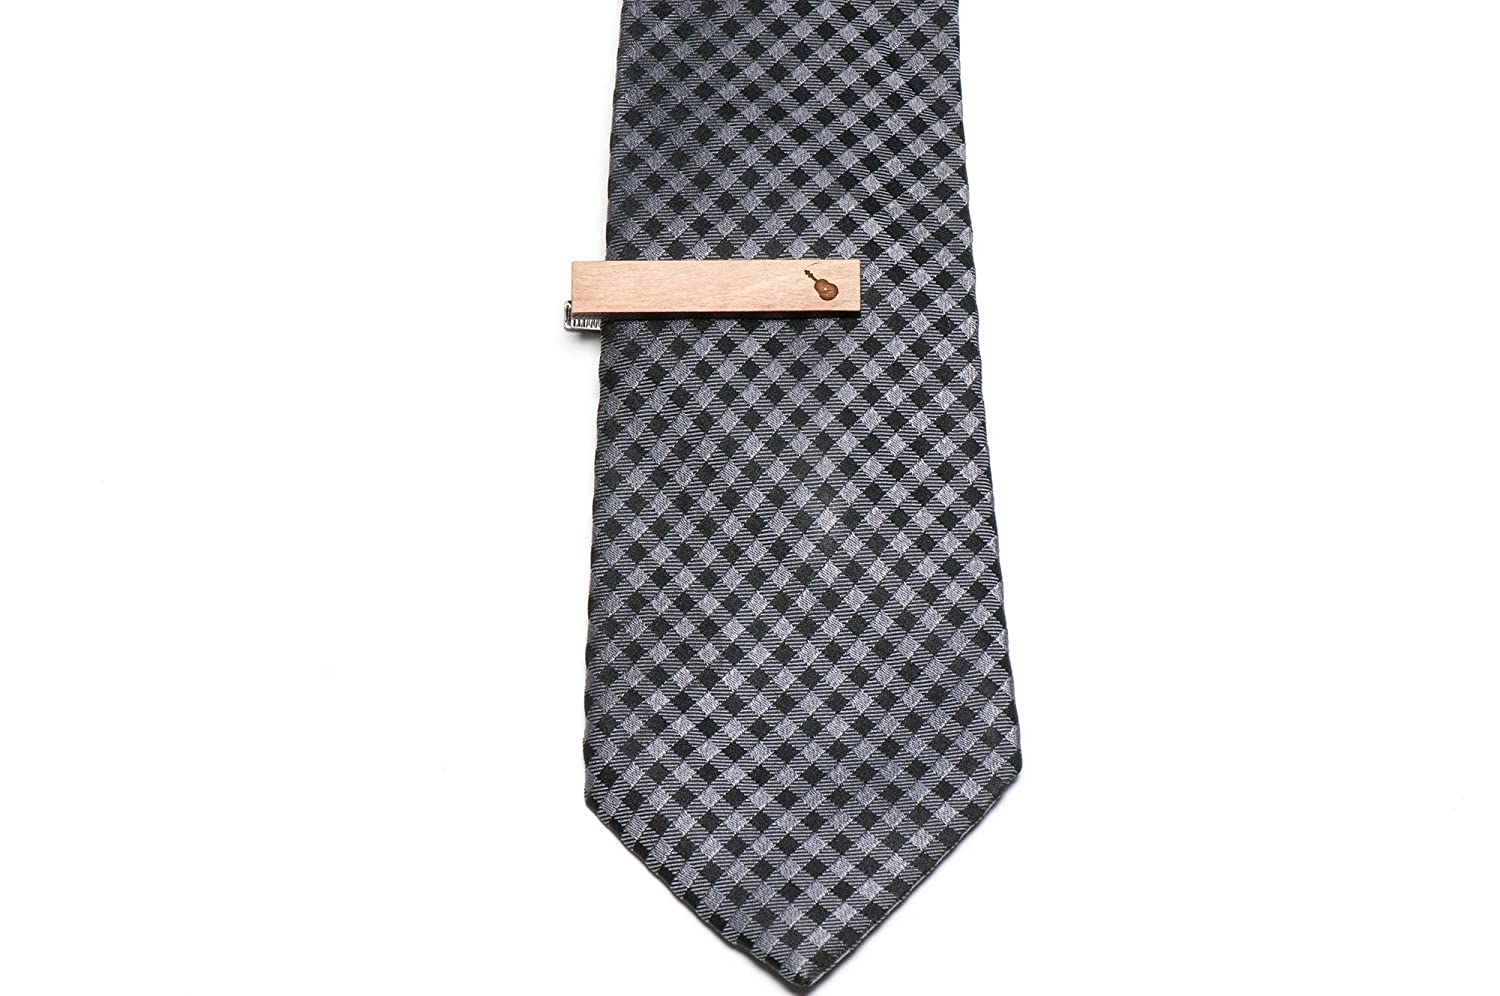 Wooden Accessories Company Wooden Tie Clips with Laser Engraved Instrument Design Cherry Wood Tie Bar Engraved in The USA